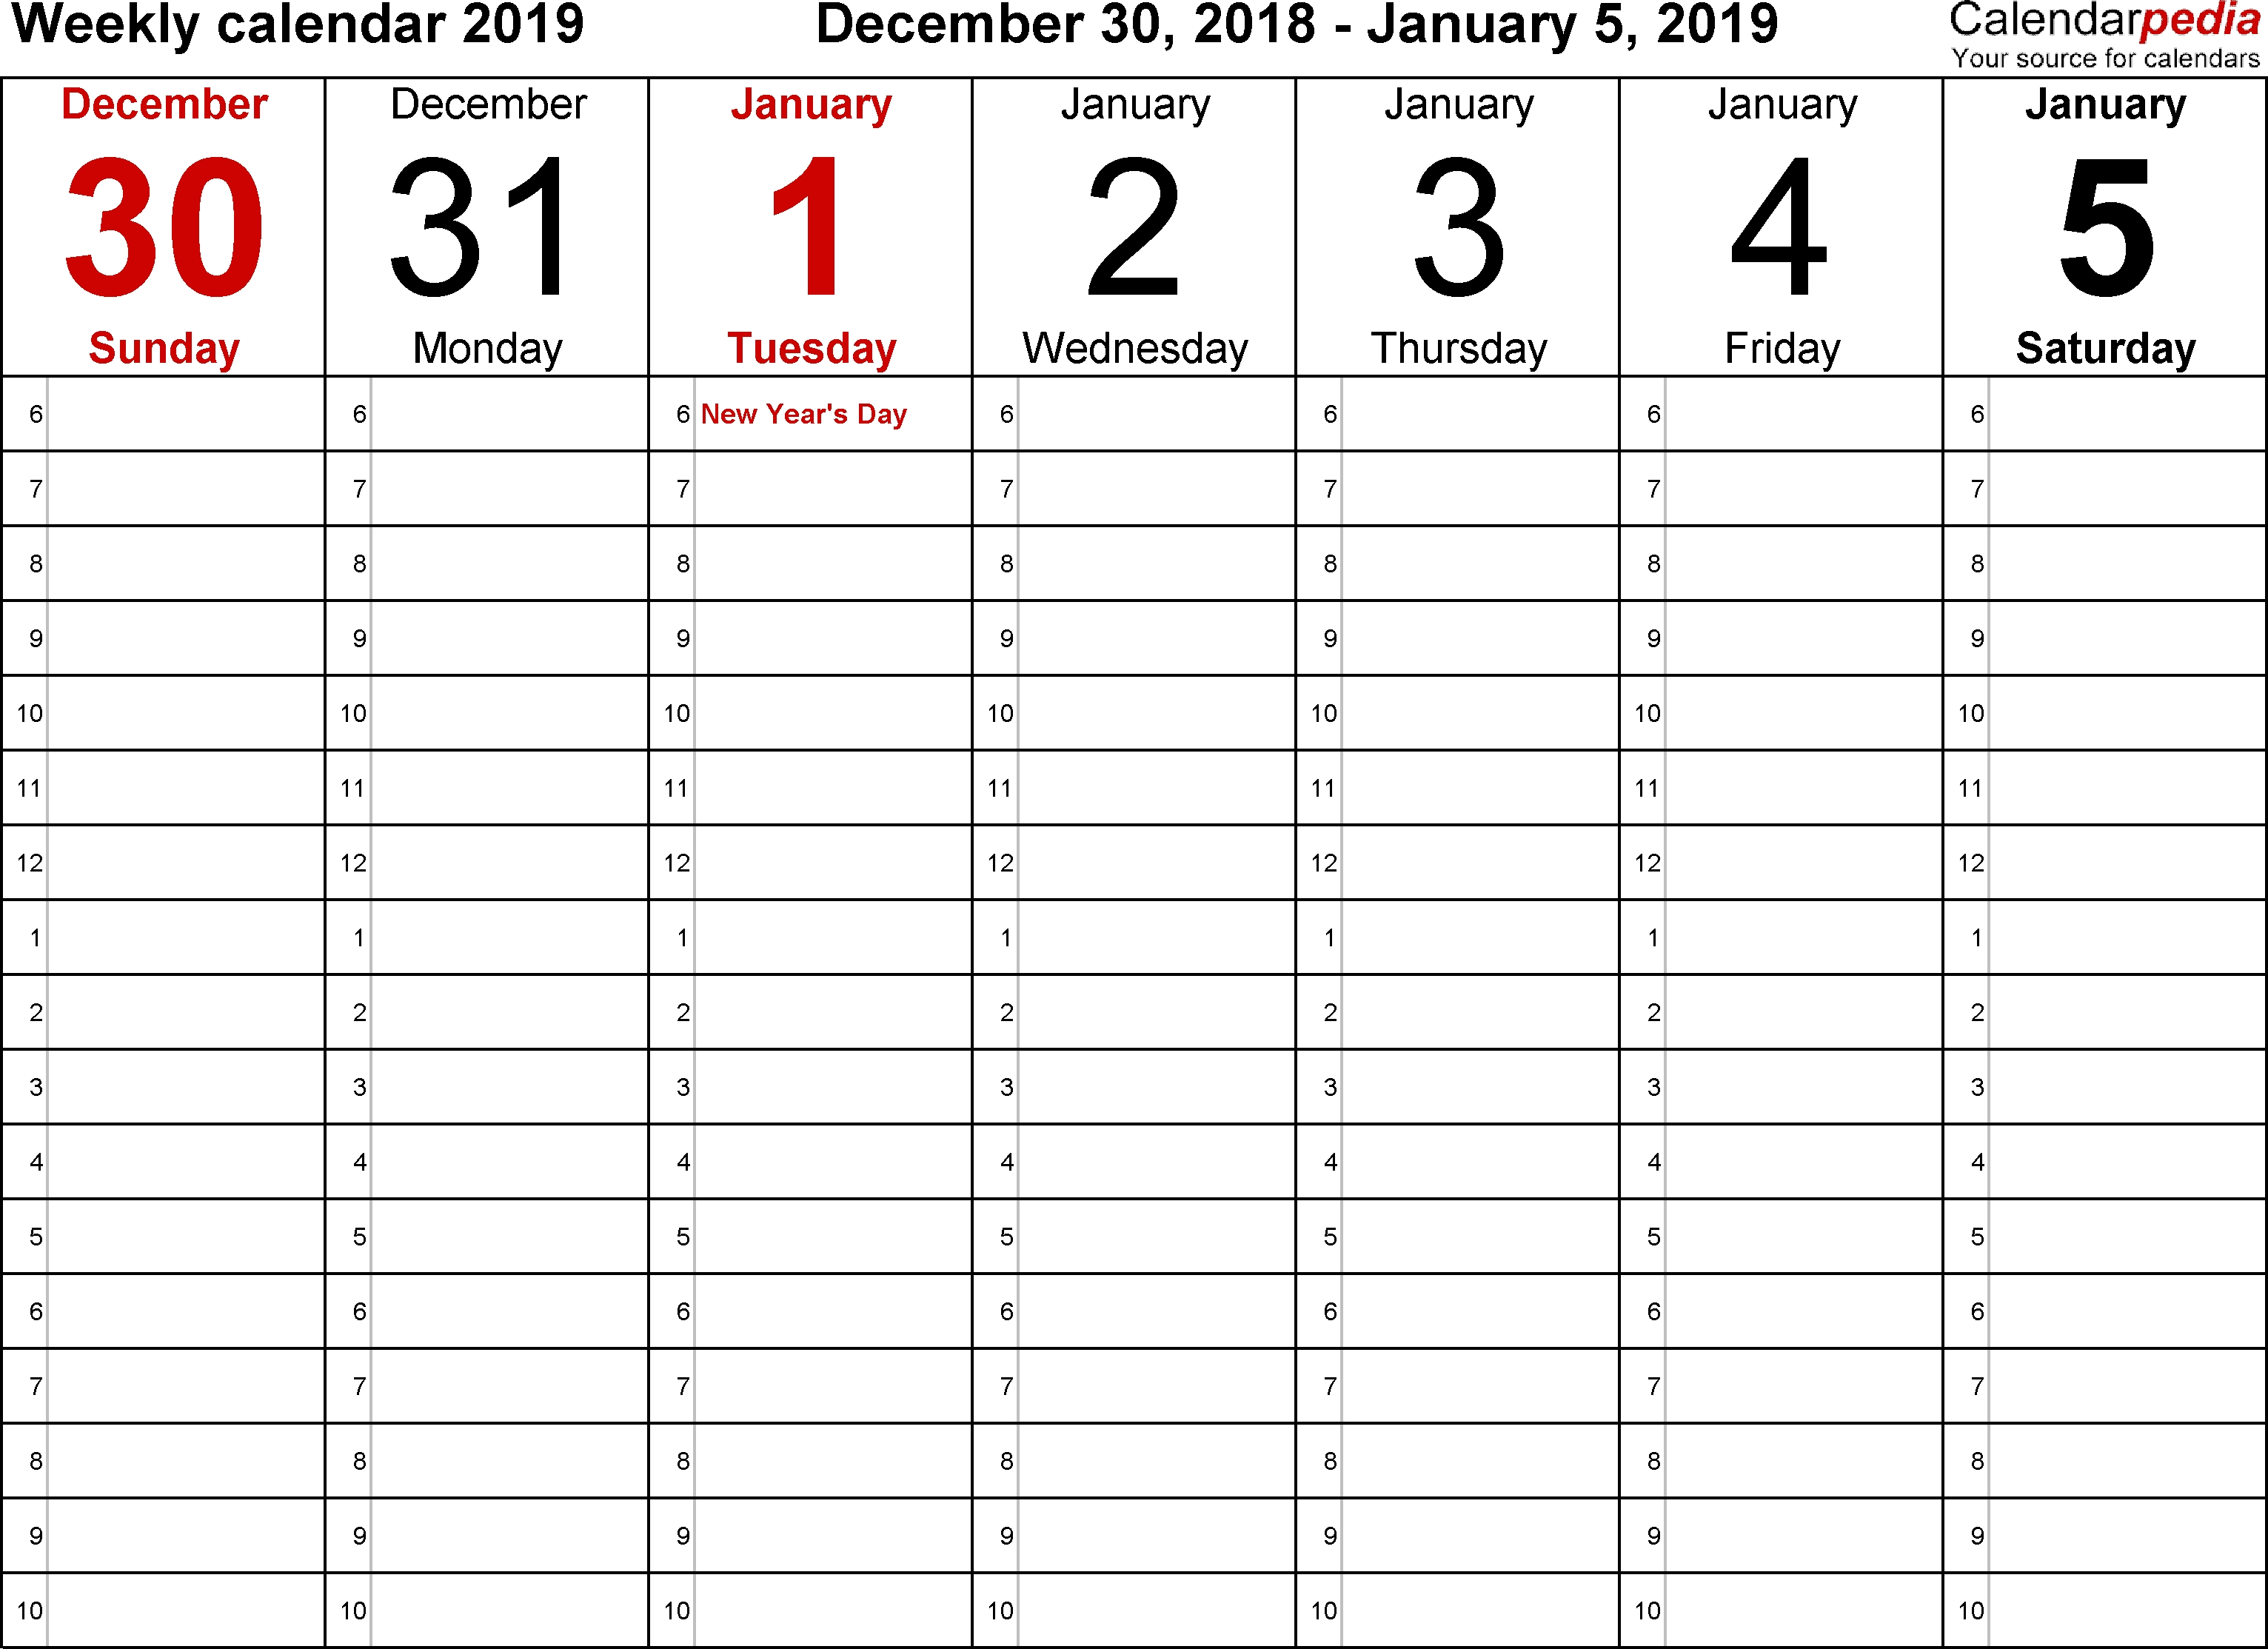 Weekly Calendar 2019 For Word - 12 Free Printable Templates throughout Type In And Printable Calendar With Hours